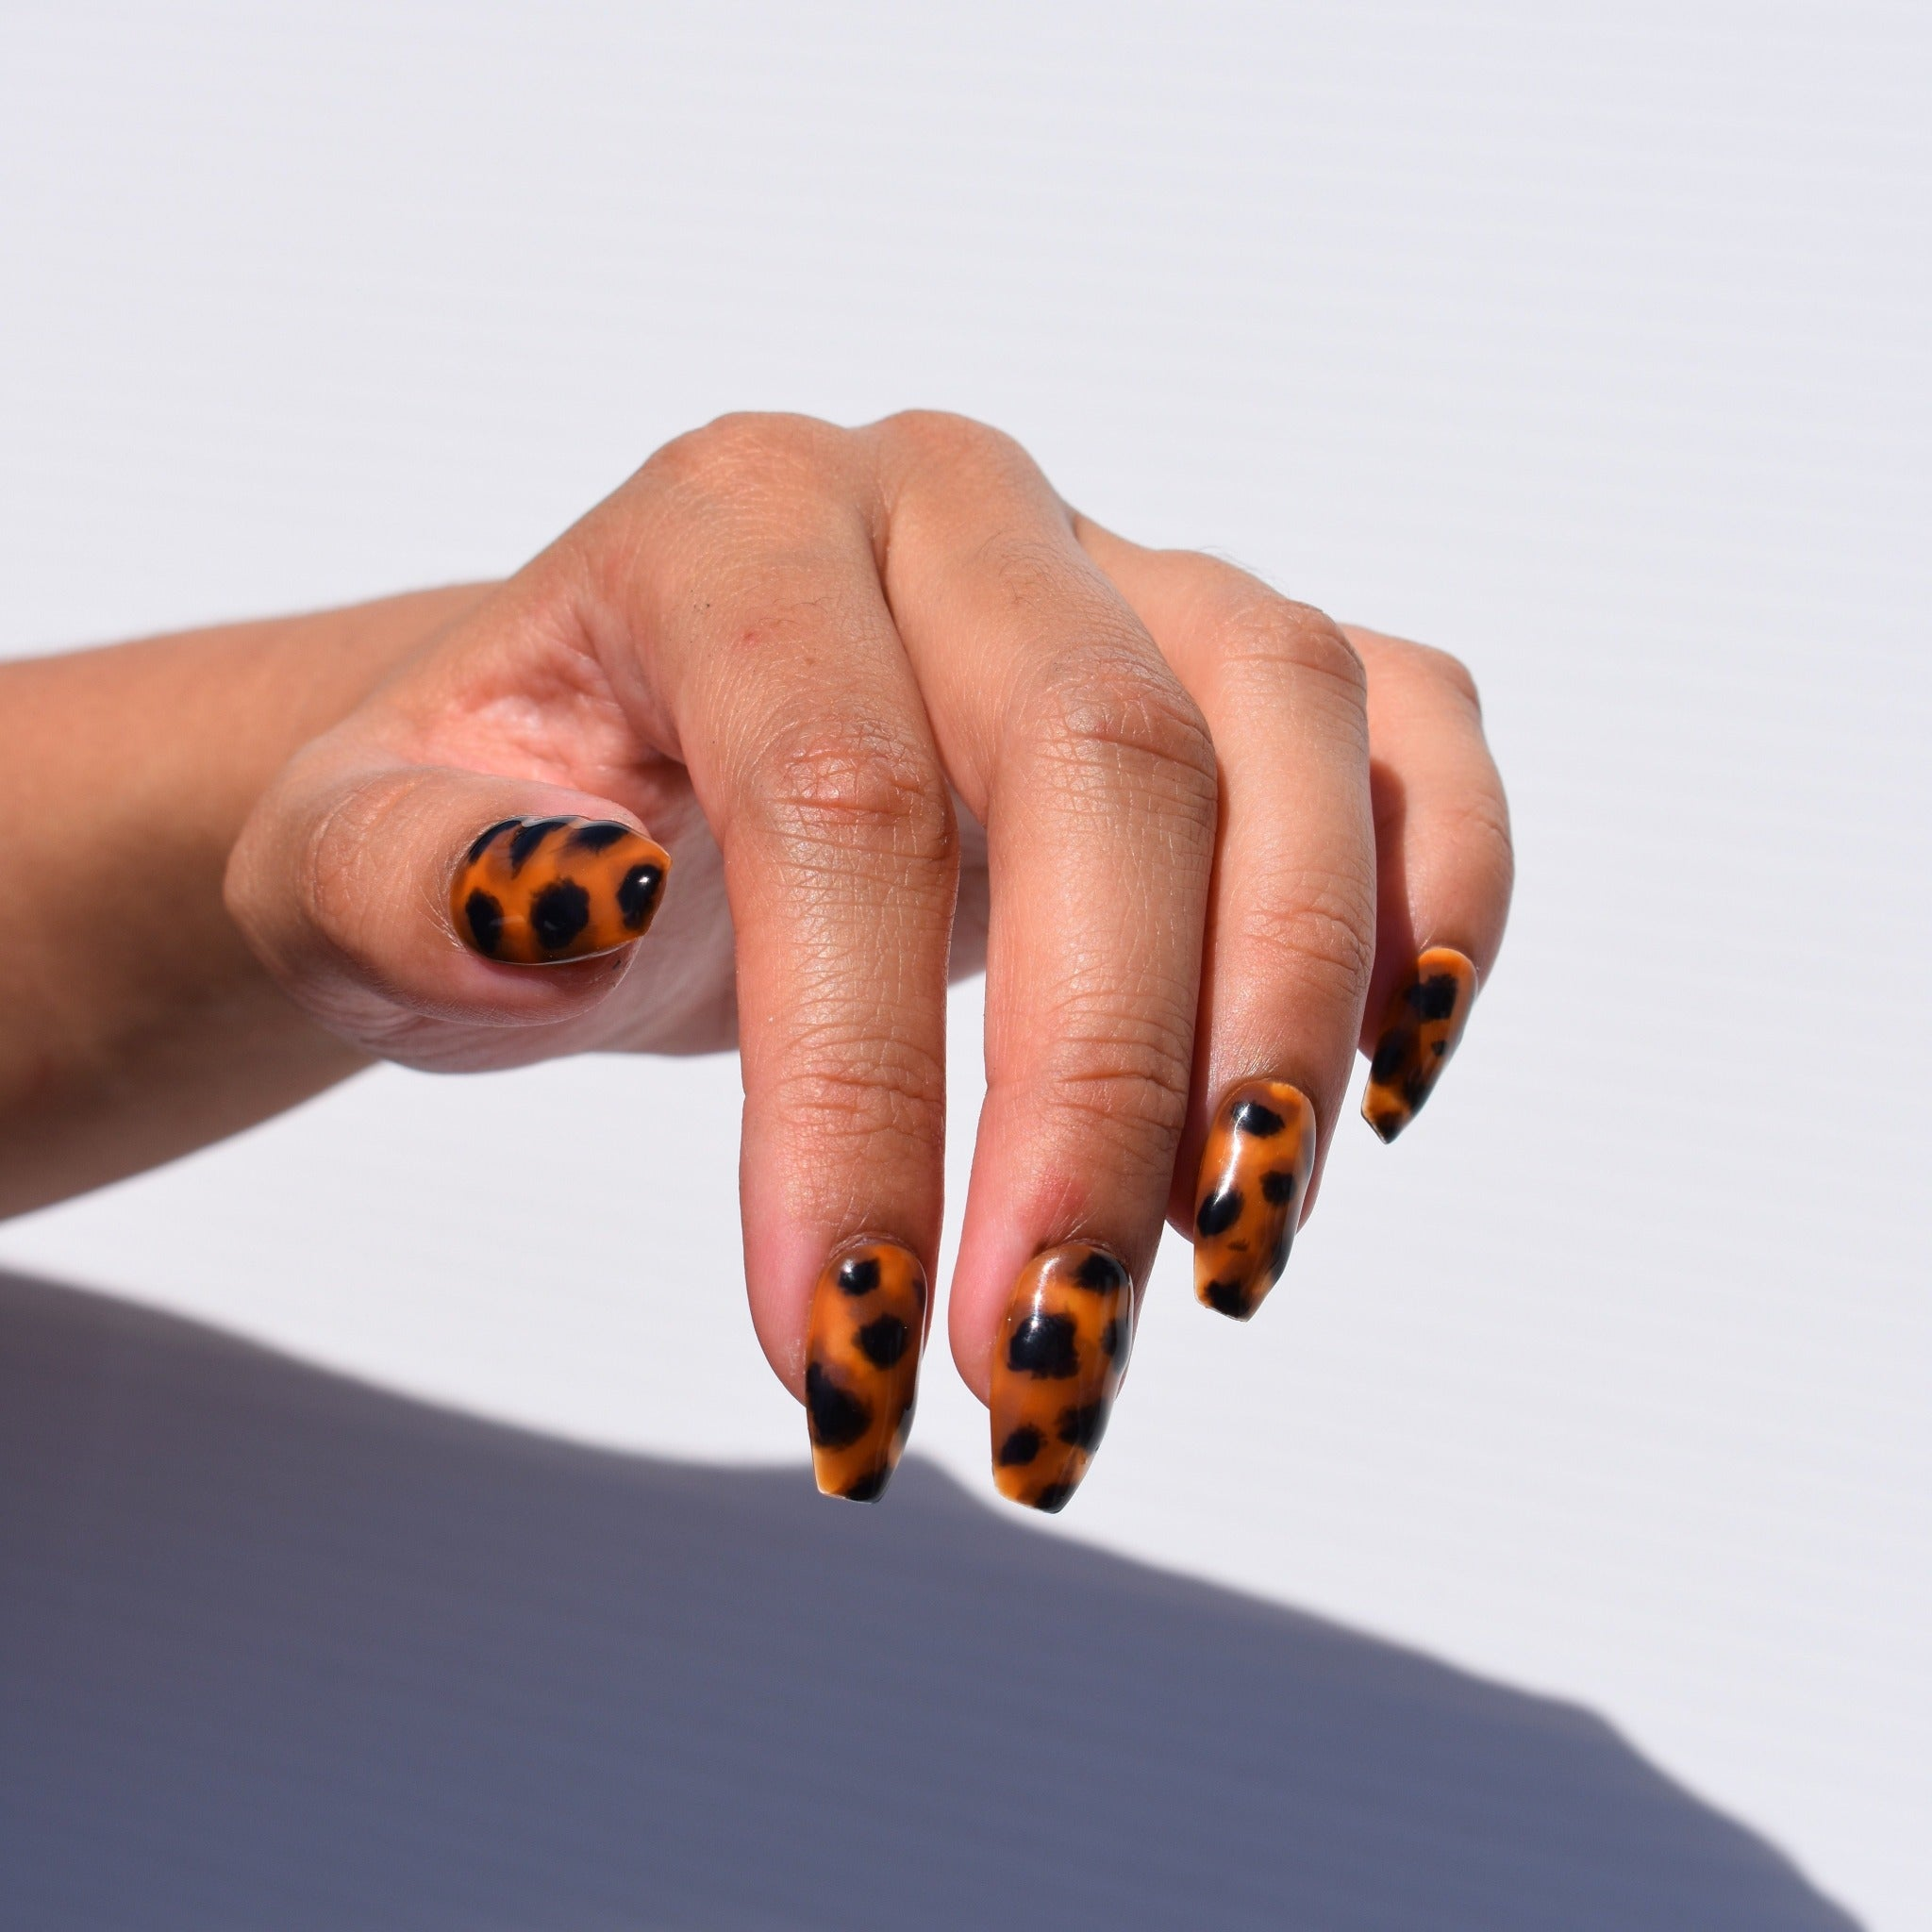 Coffin-shaped hand-painted gel polish nail art press-ons.  Tortoise shell nail art with a glossy finish.  One hand is pictured with a bright white background.